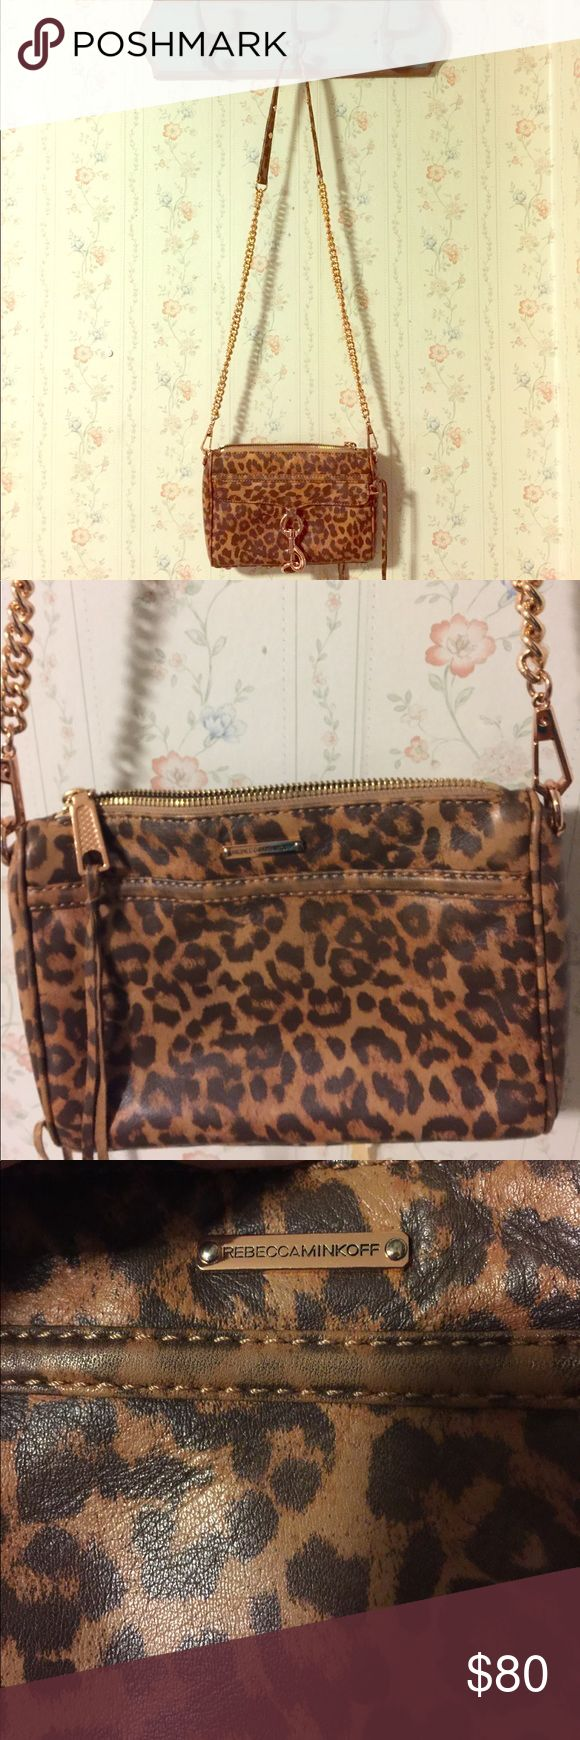 Rebecca Minkoff mini mac leopard print Mini mac super cute and rare. Has rose gold details and in very good shape. Rebecca Minkoff Bags Crossbody Bags